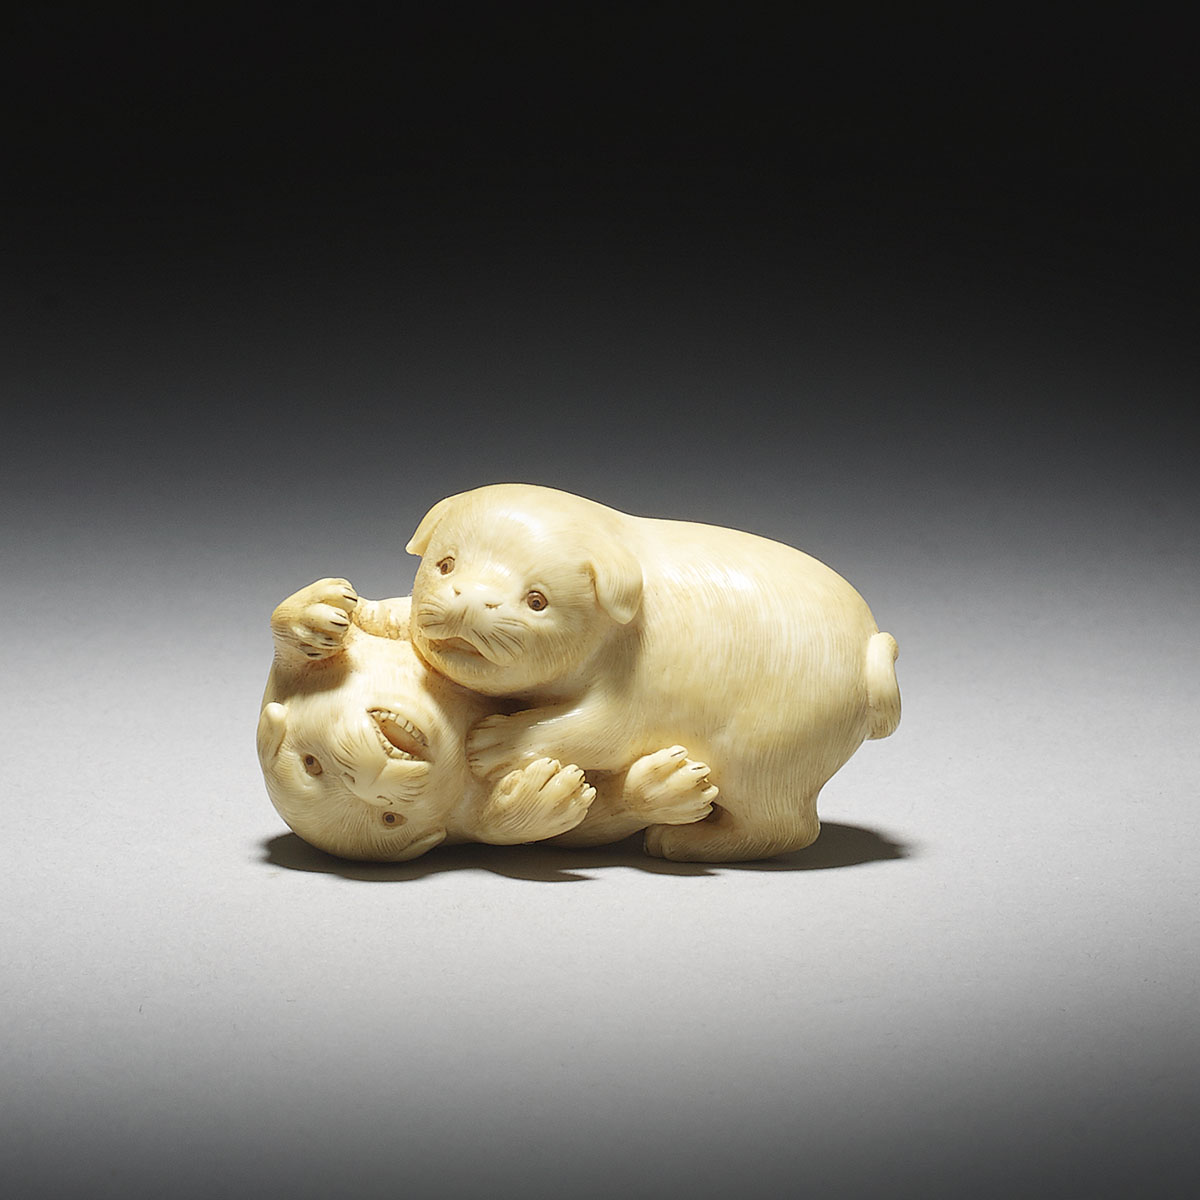 Ivory Netsuke of Two Dogs Playfighting by Kaigyokusai Masatsugu_MR2922_v1